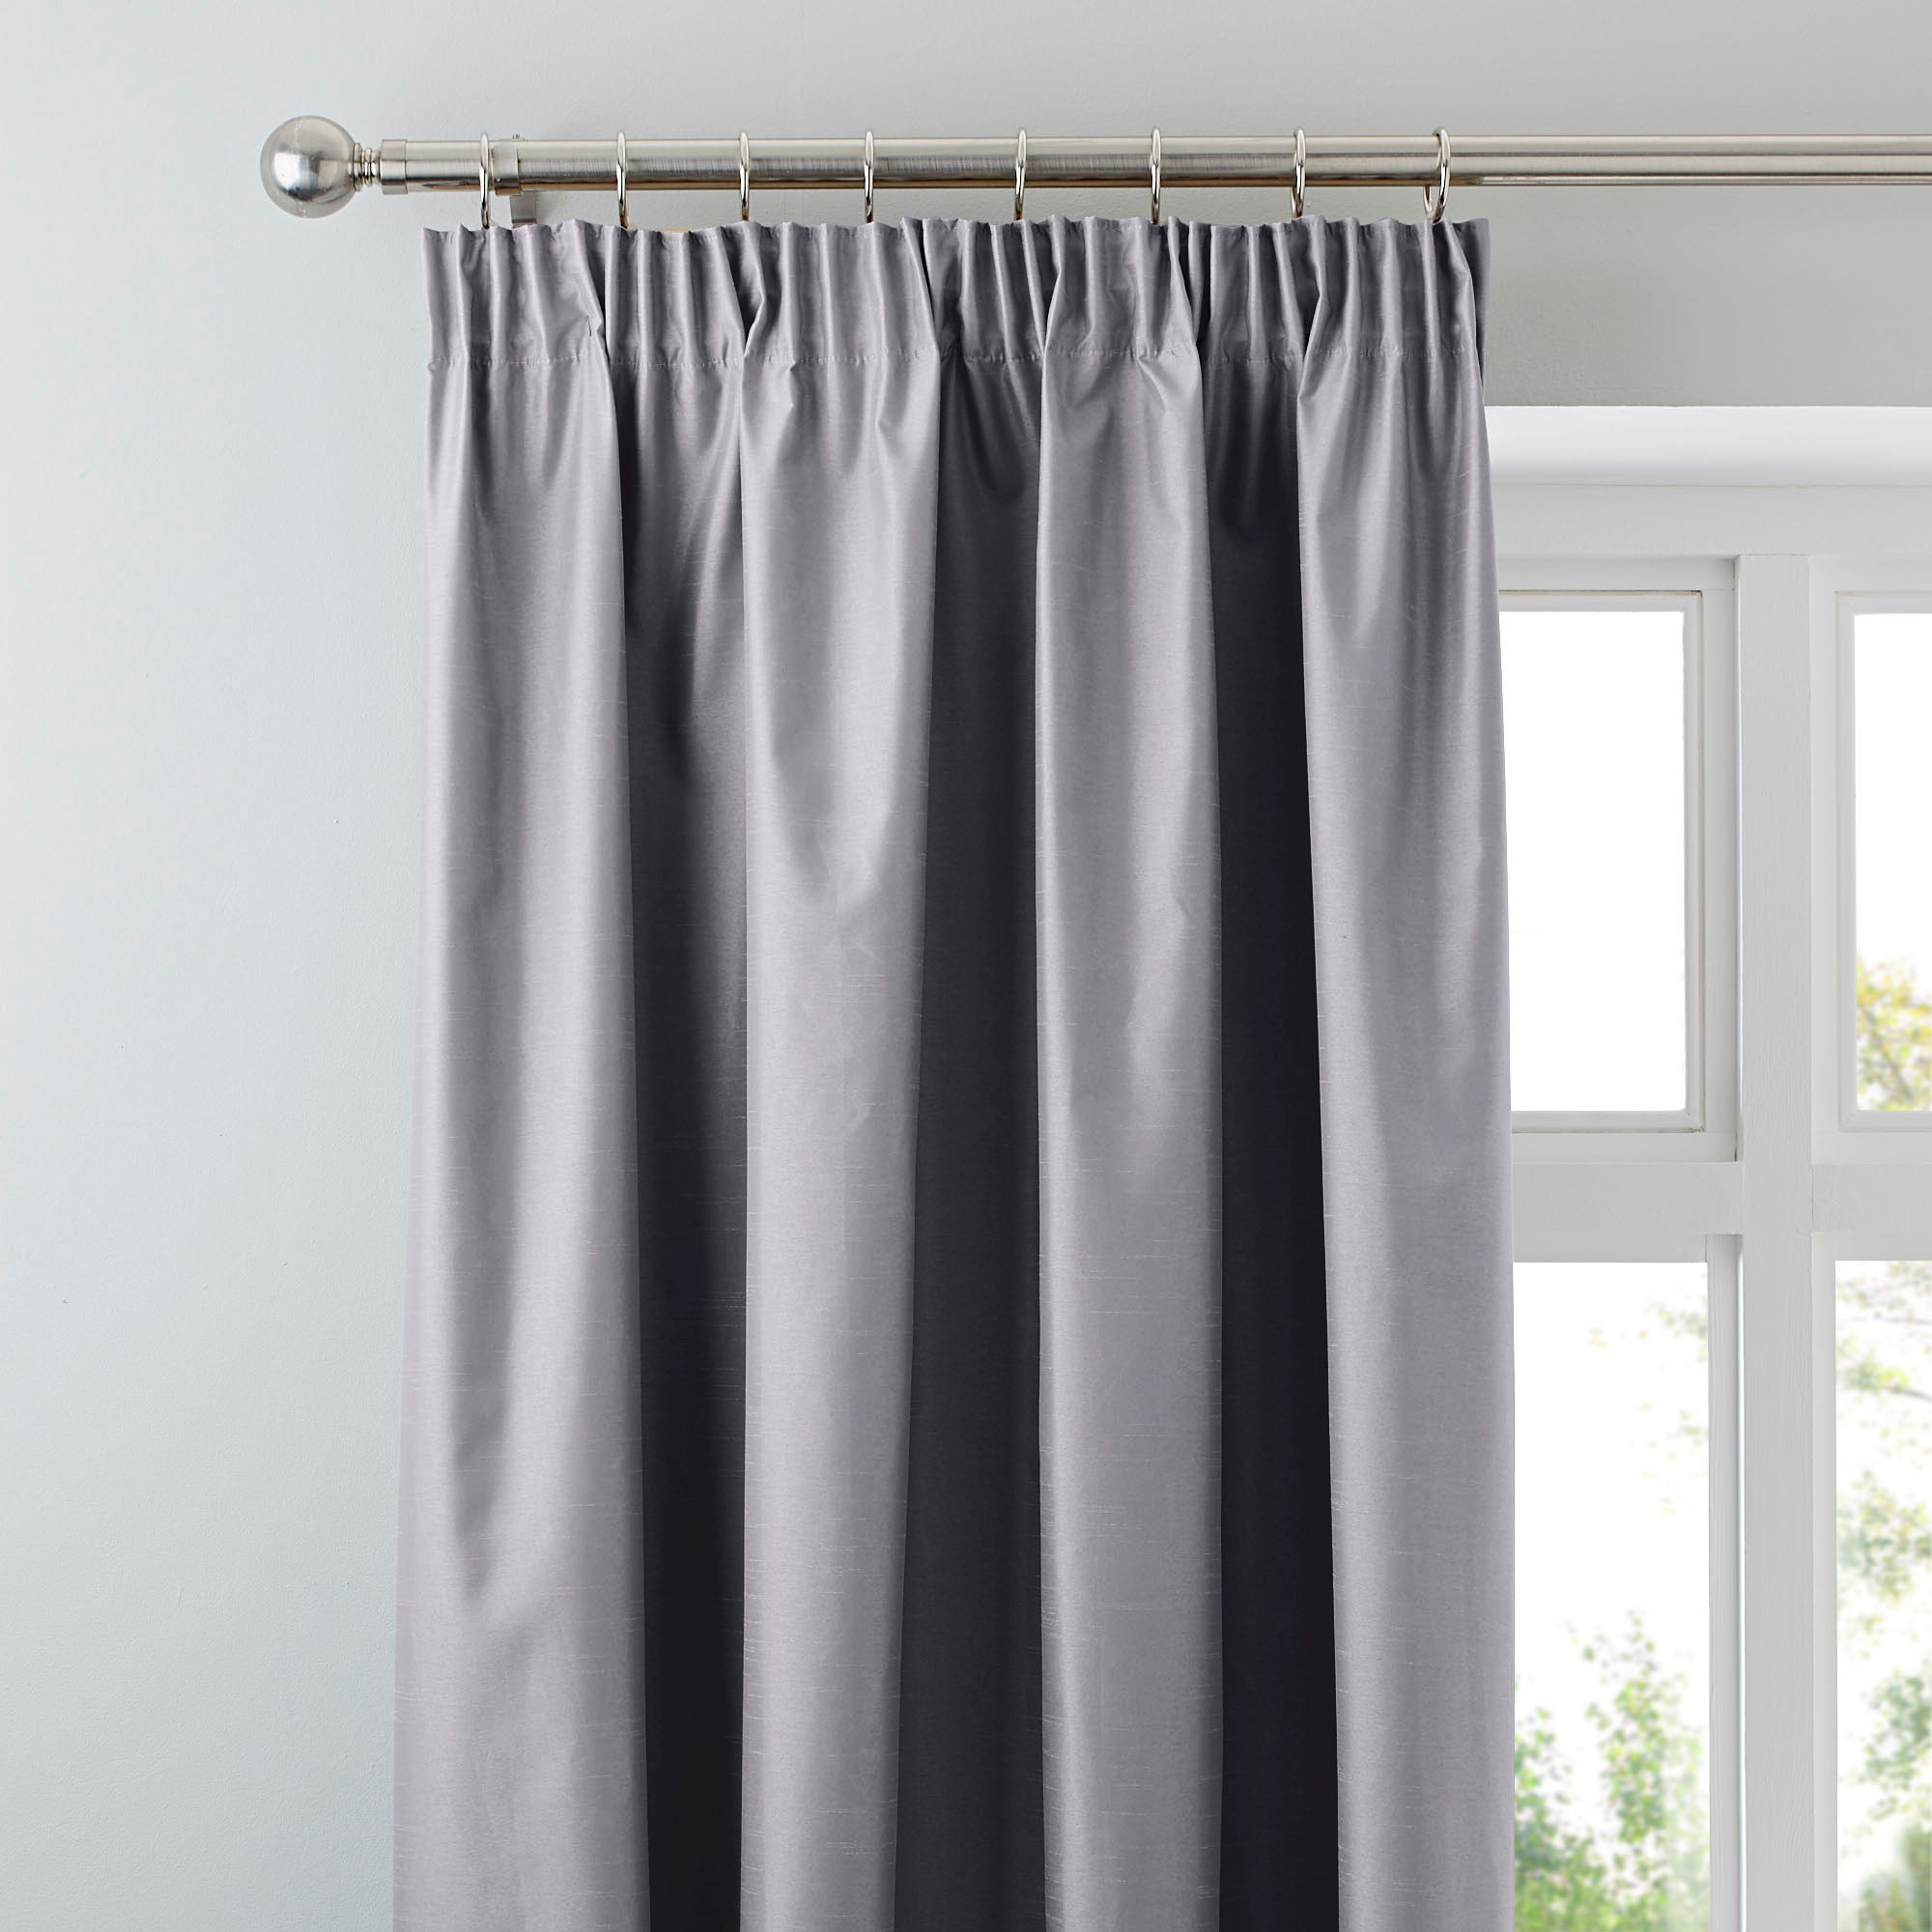 Silver Nova Blackout Pencil Pleat Curtains